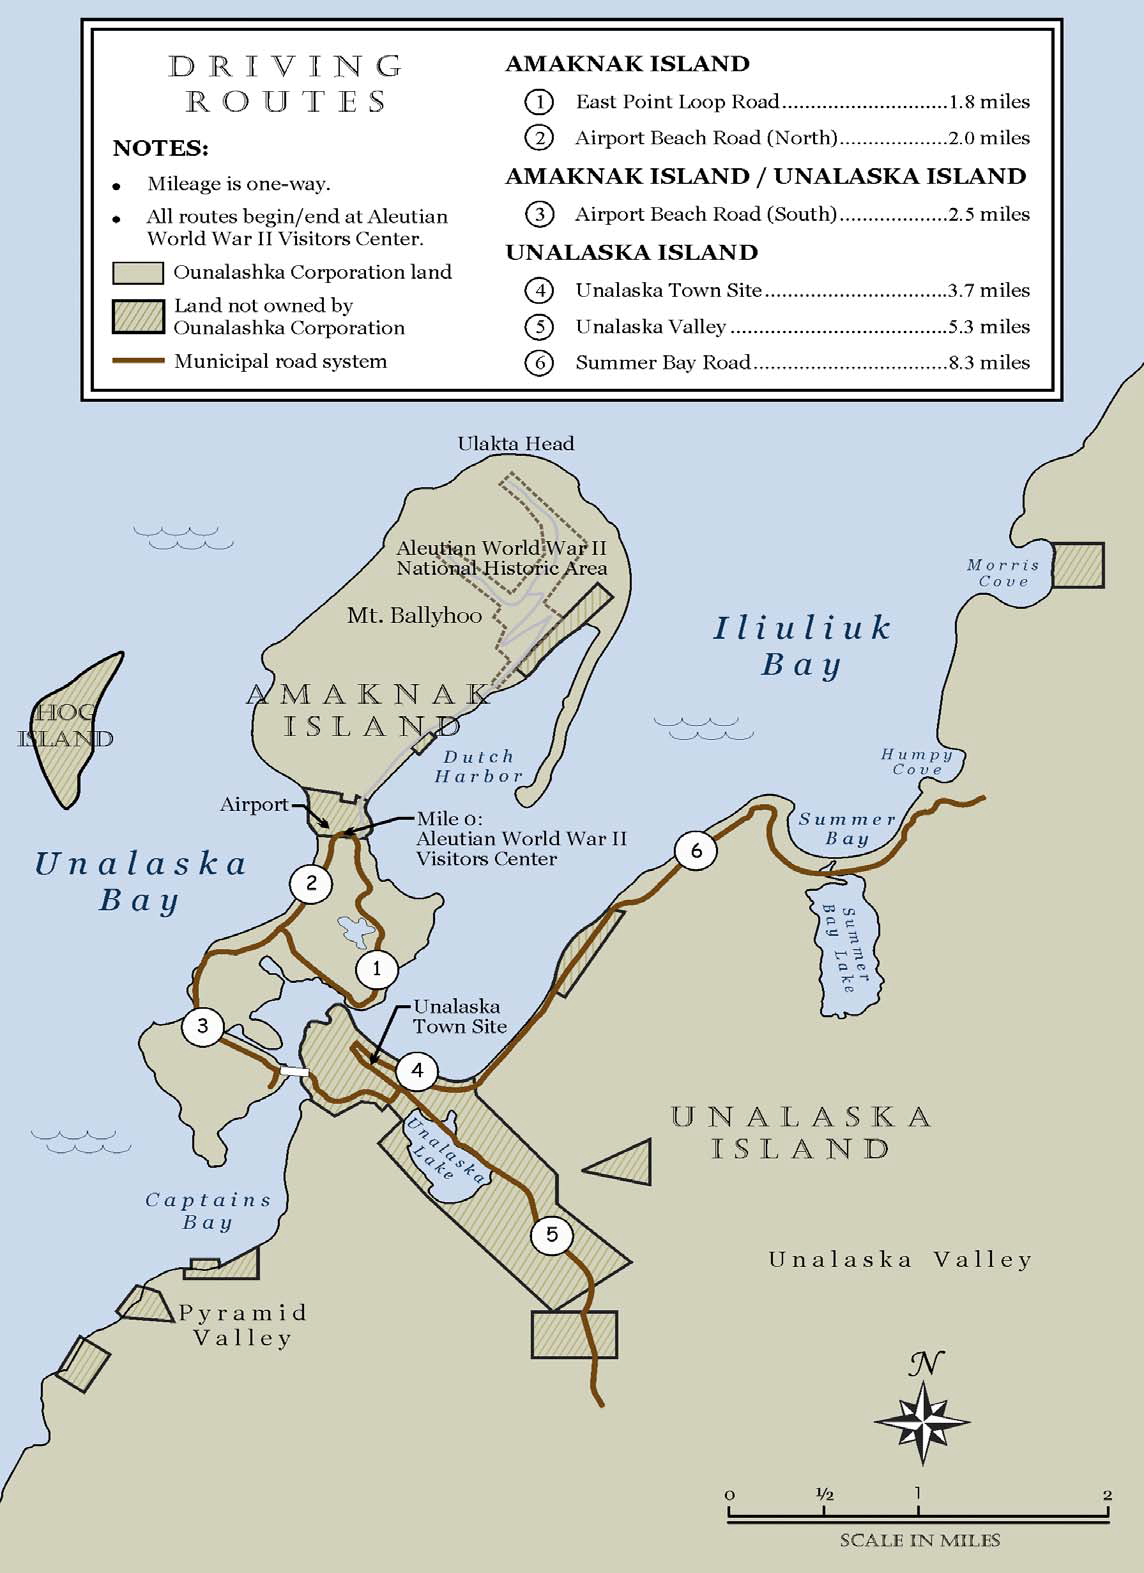 map of Unalaska island and Amaknak Island showing general location of 6 driving routes